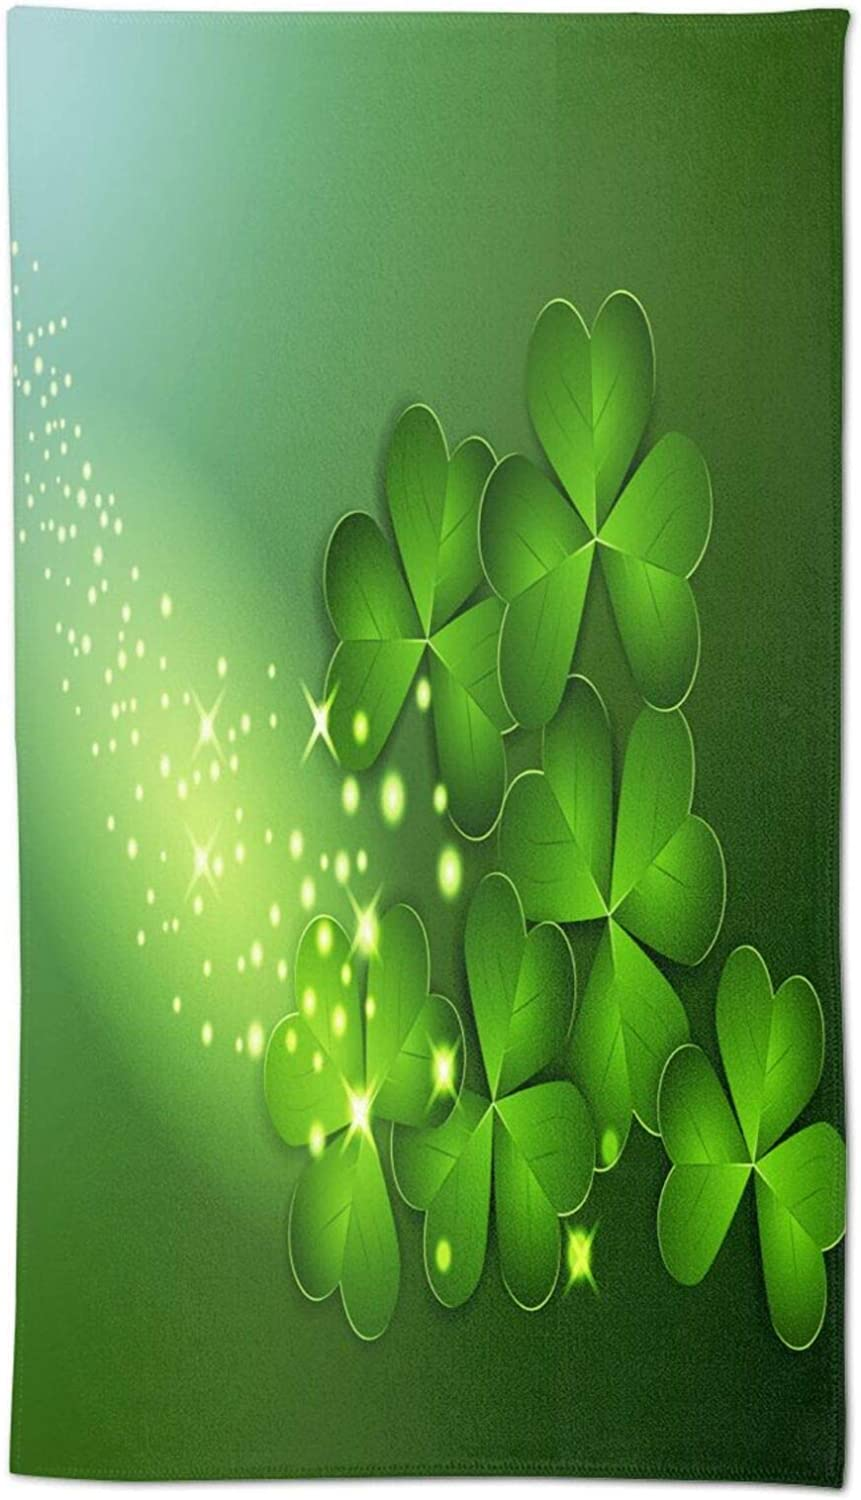 Fixed price for sale Ouqiuwa Soft Happy Saint Patricks Same day shipping Day Hand in 27.5x15.7 Towels T